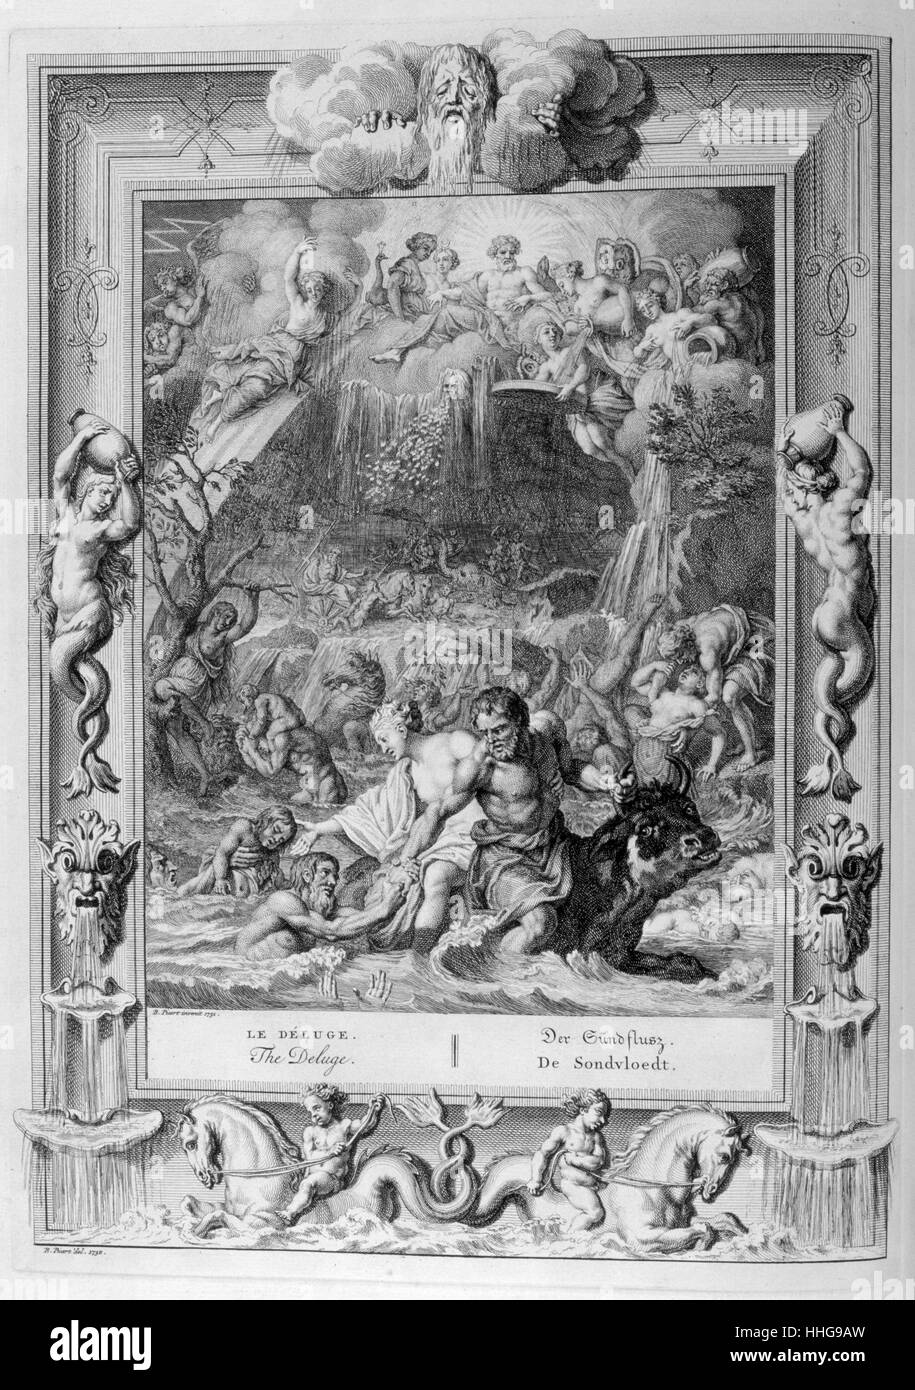 The Deluge. Engraved illustration from 'The Temple of the Muses', 1733. - Stock Image